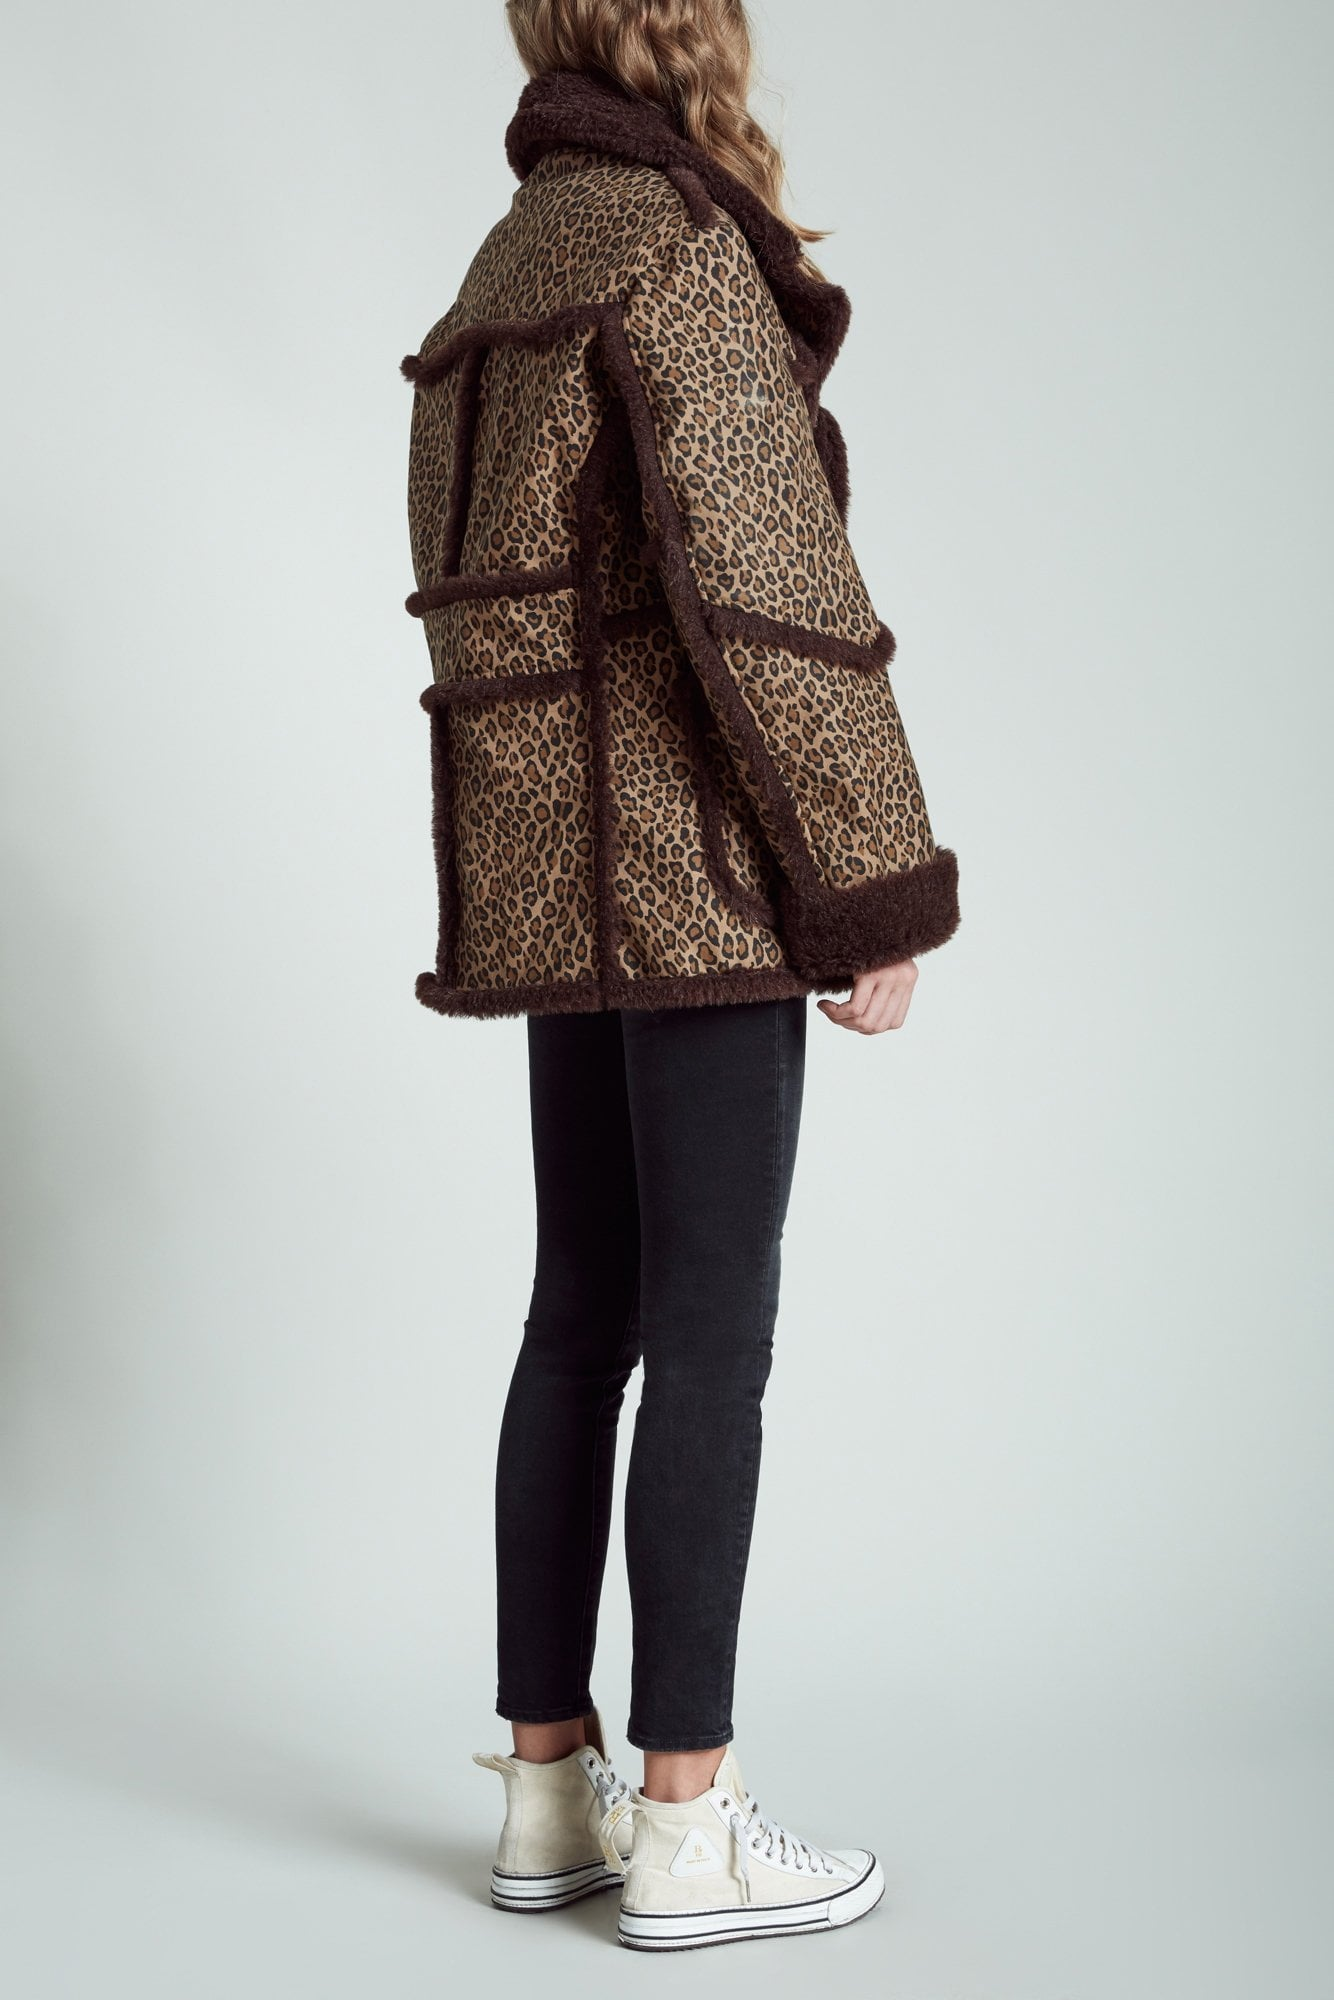 Imitation Sheepskin Coat- Leopard